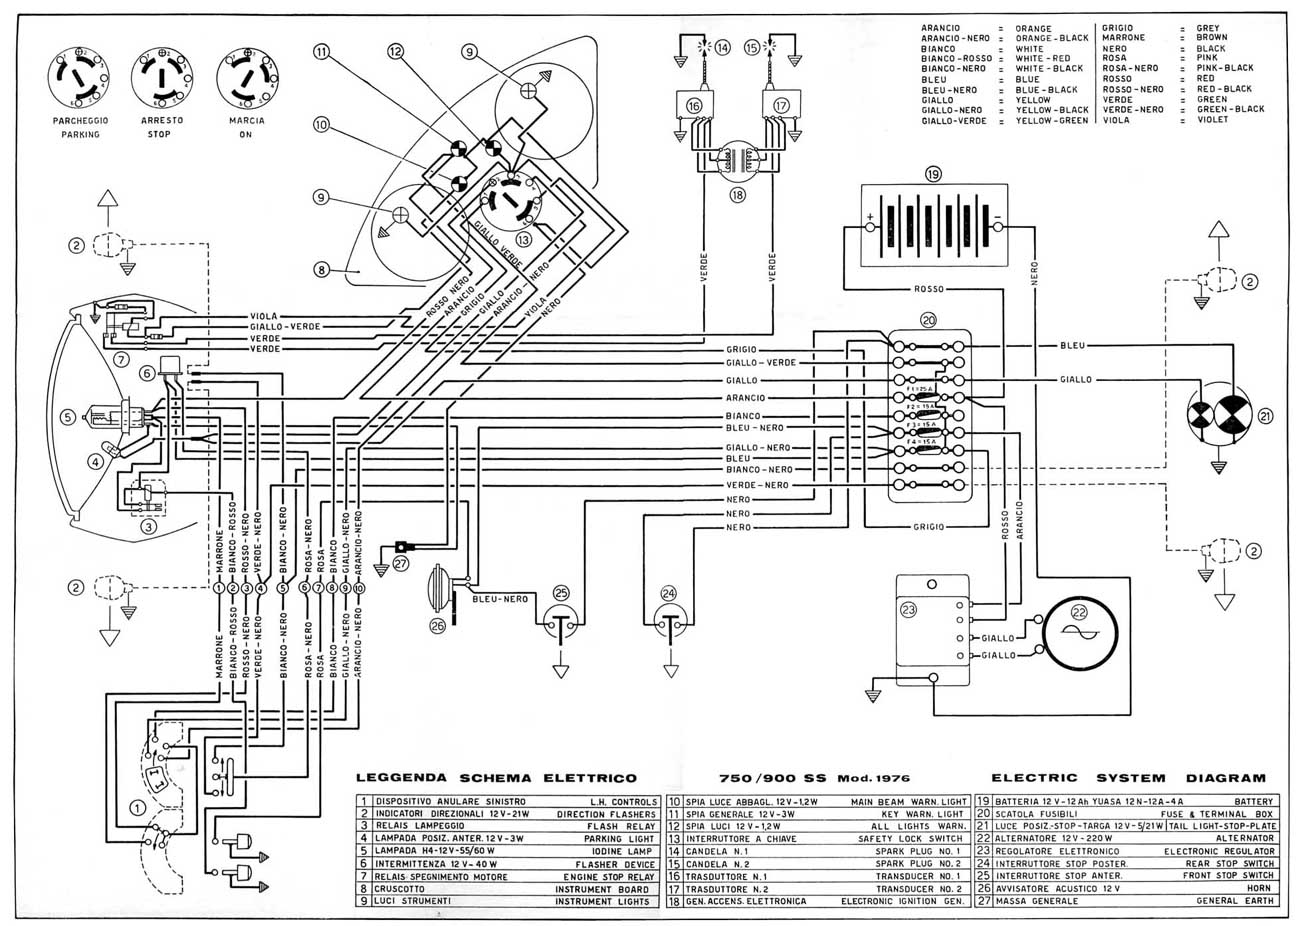 ducati monster 696 wiring diagram victory cross country